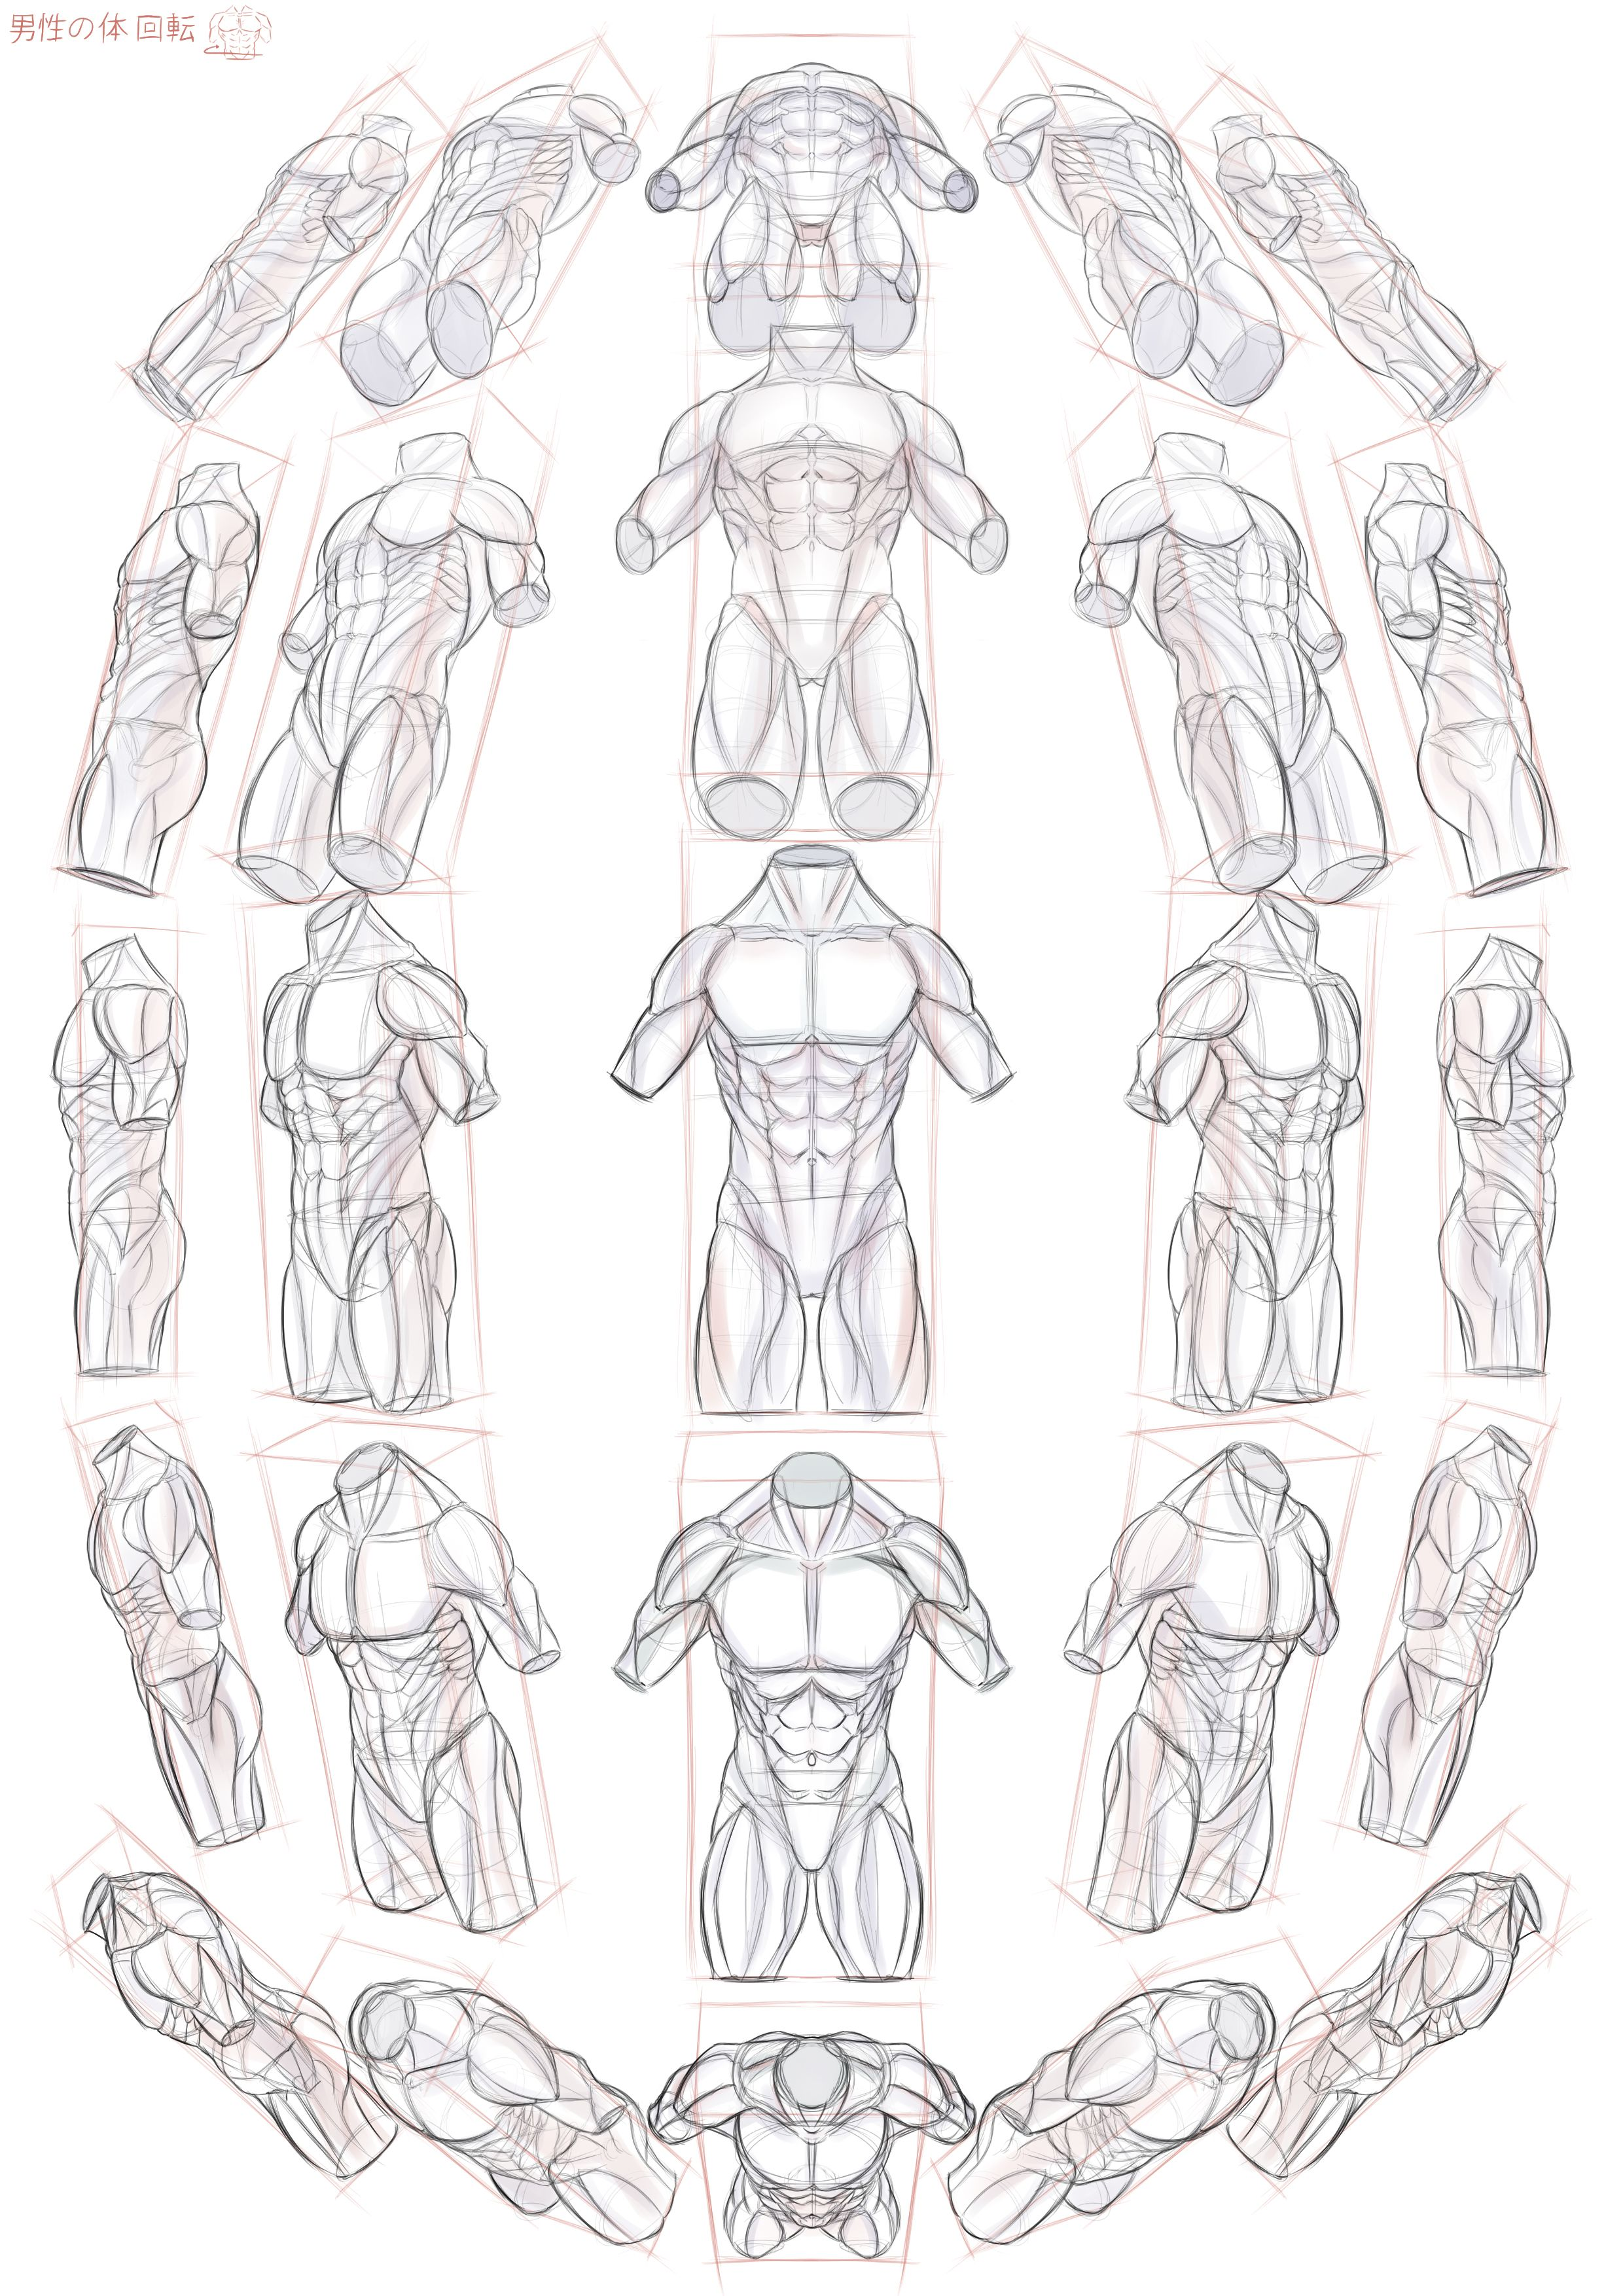 Pin By Coco Nucifera On Anatomy Pinterest Drawings Art And Sketches